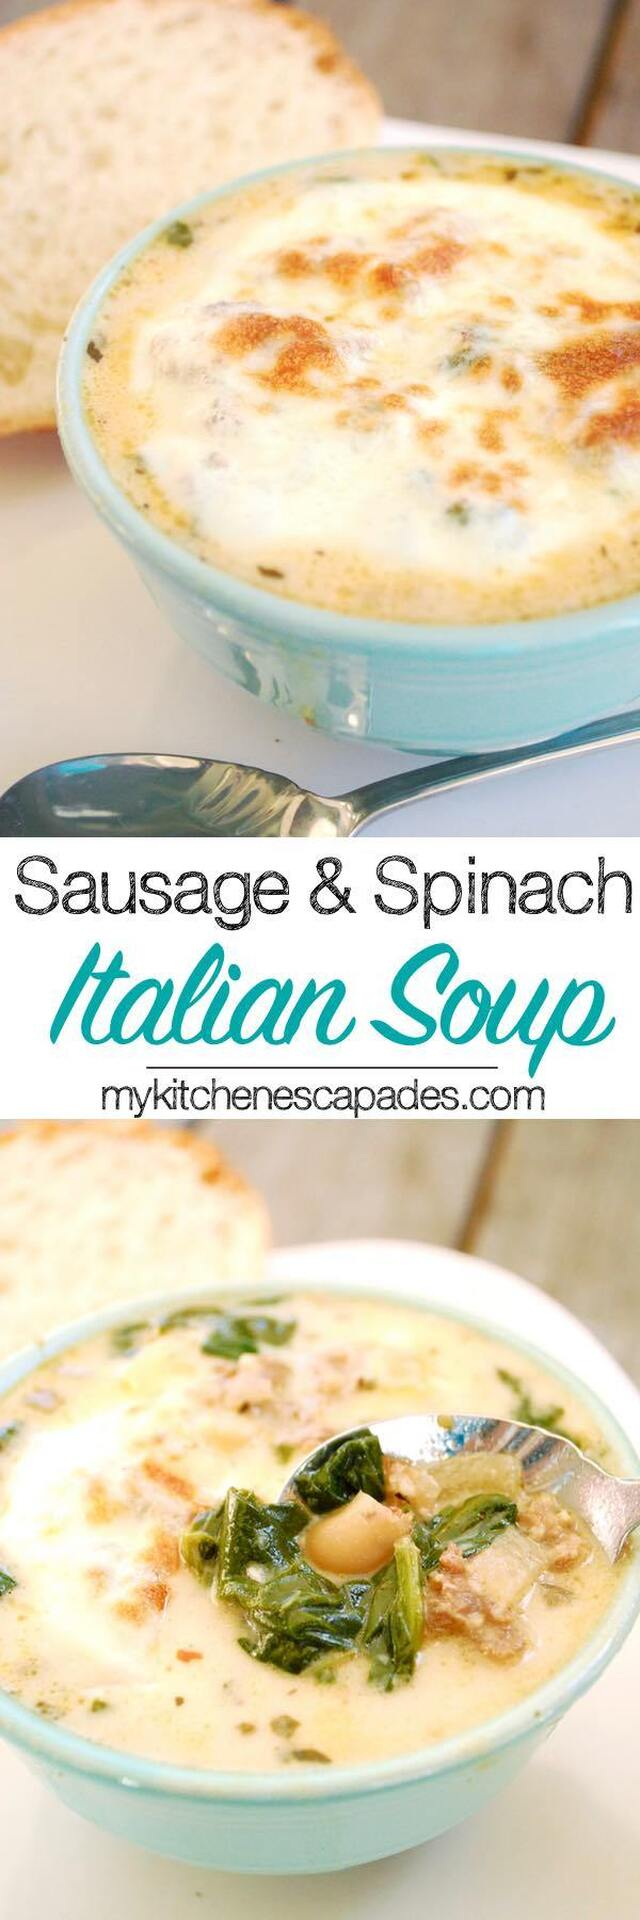 Sausage and Spinach Italian Soup